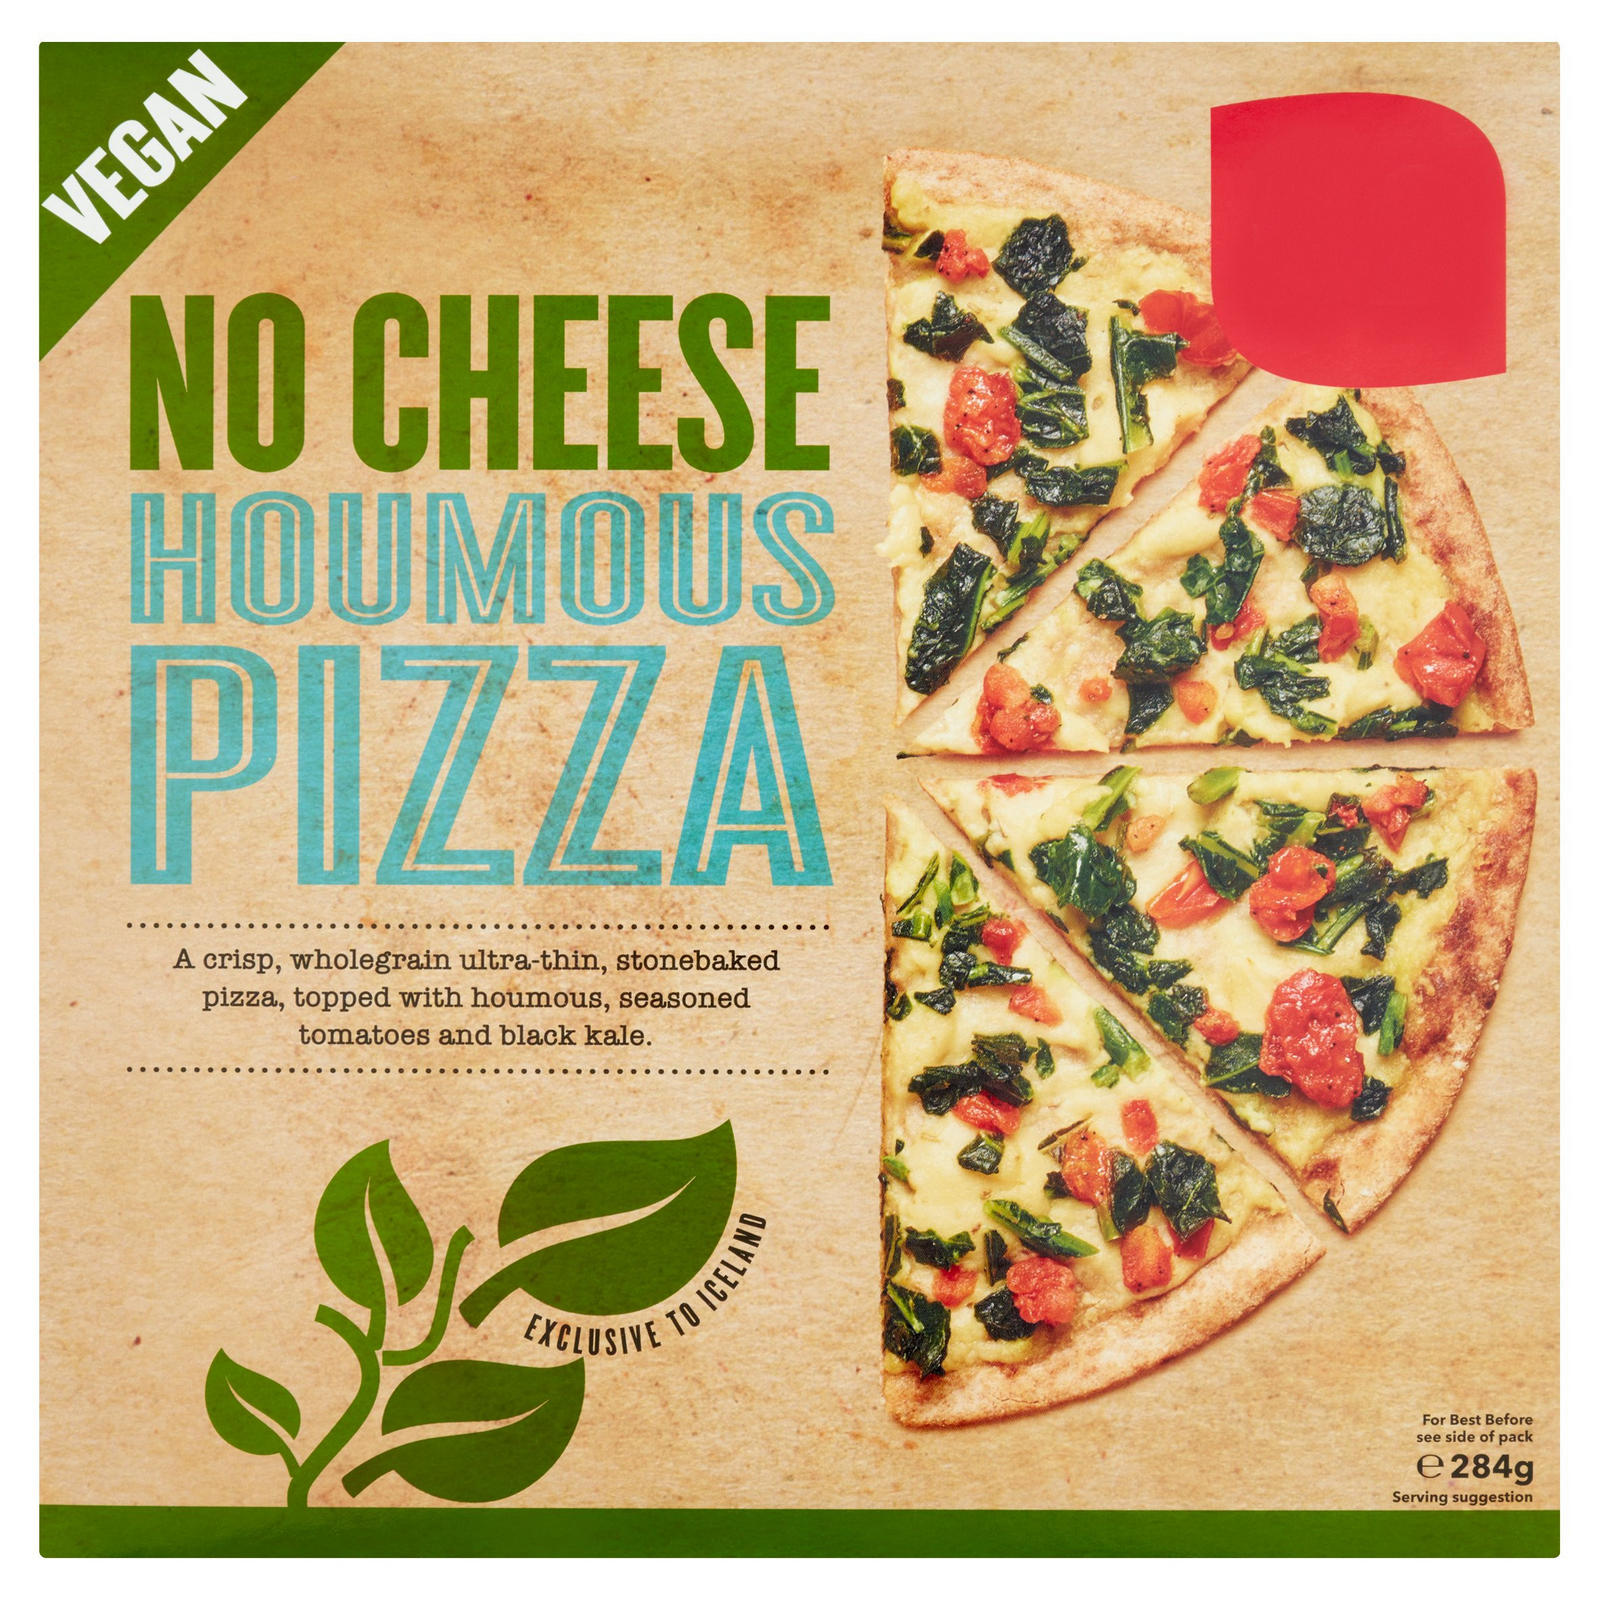 No Cheese Houmous Pizza 284g Thin Crispy Pizza Iceland